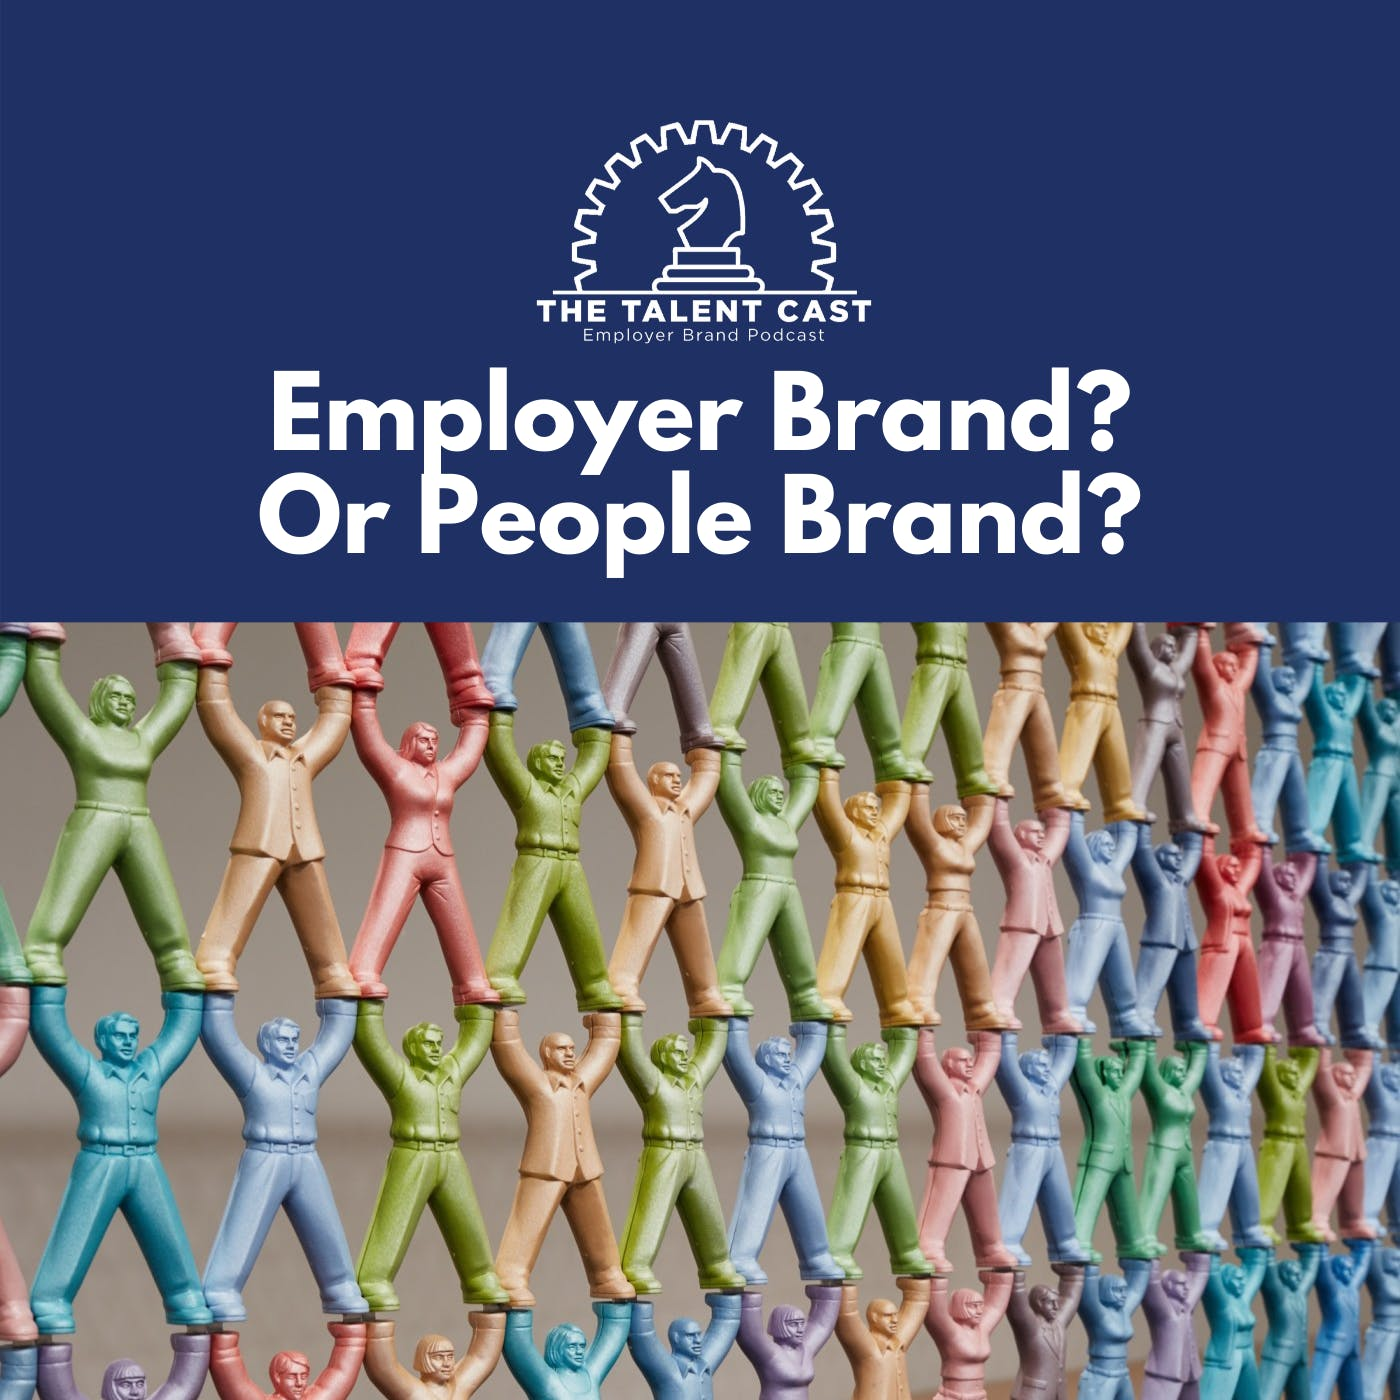 Employer Brand? Or People Brand?